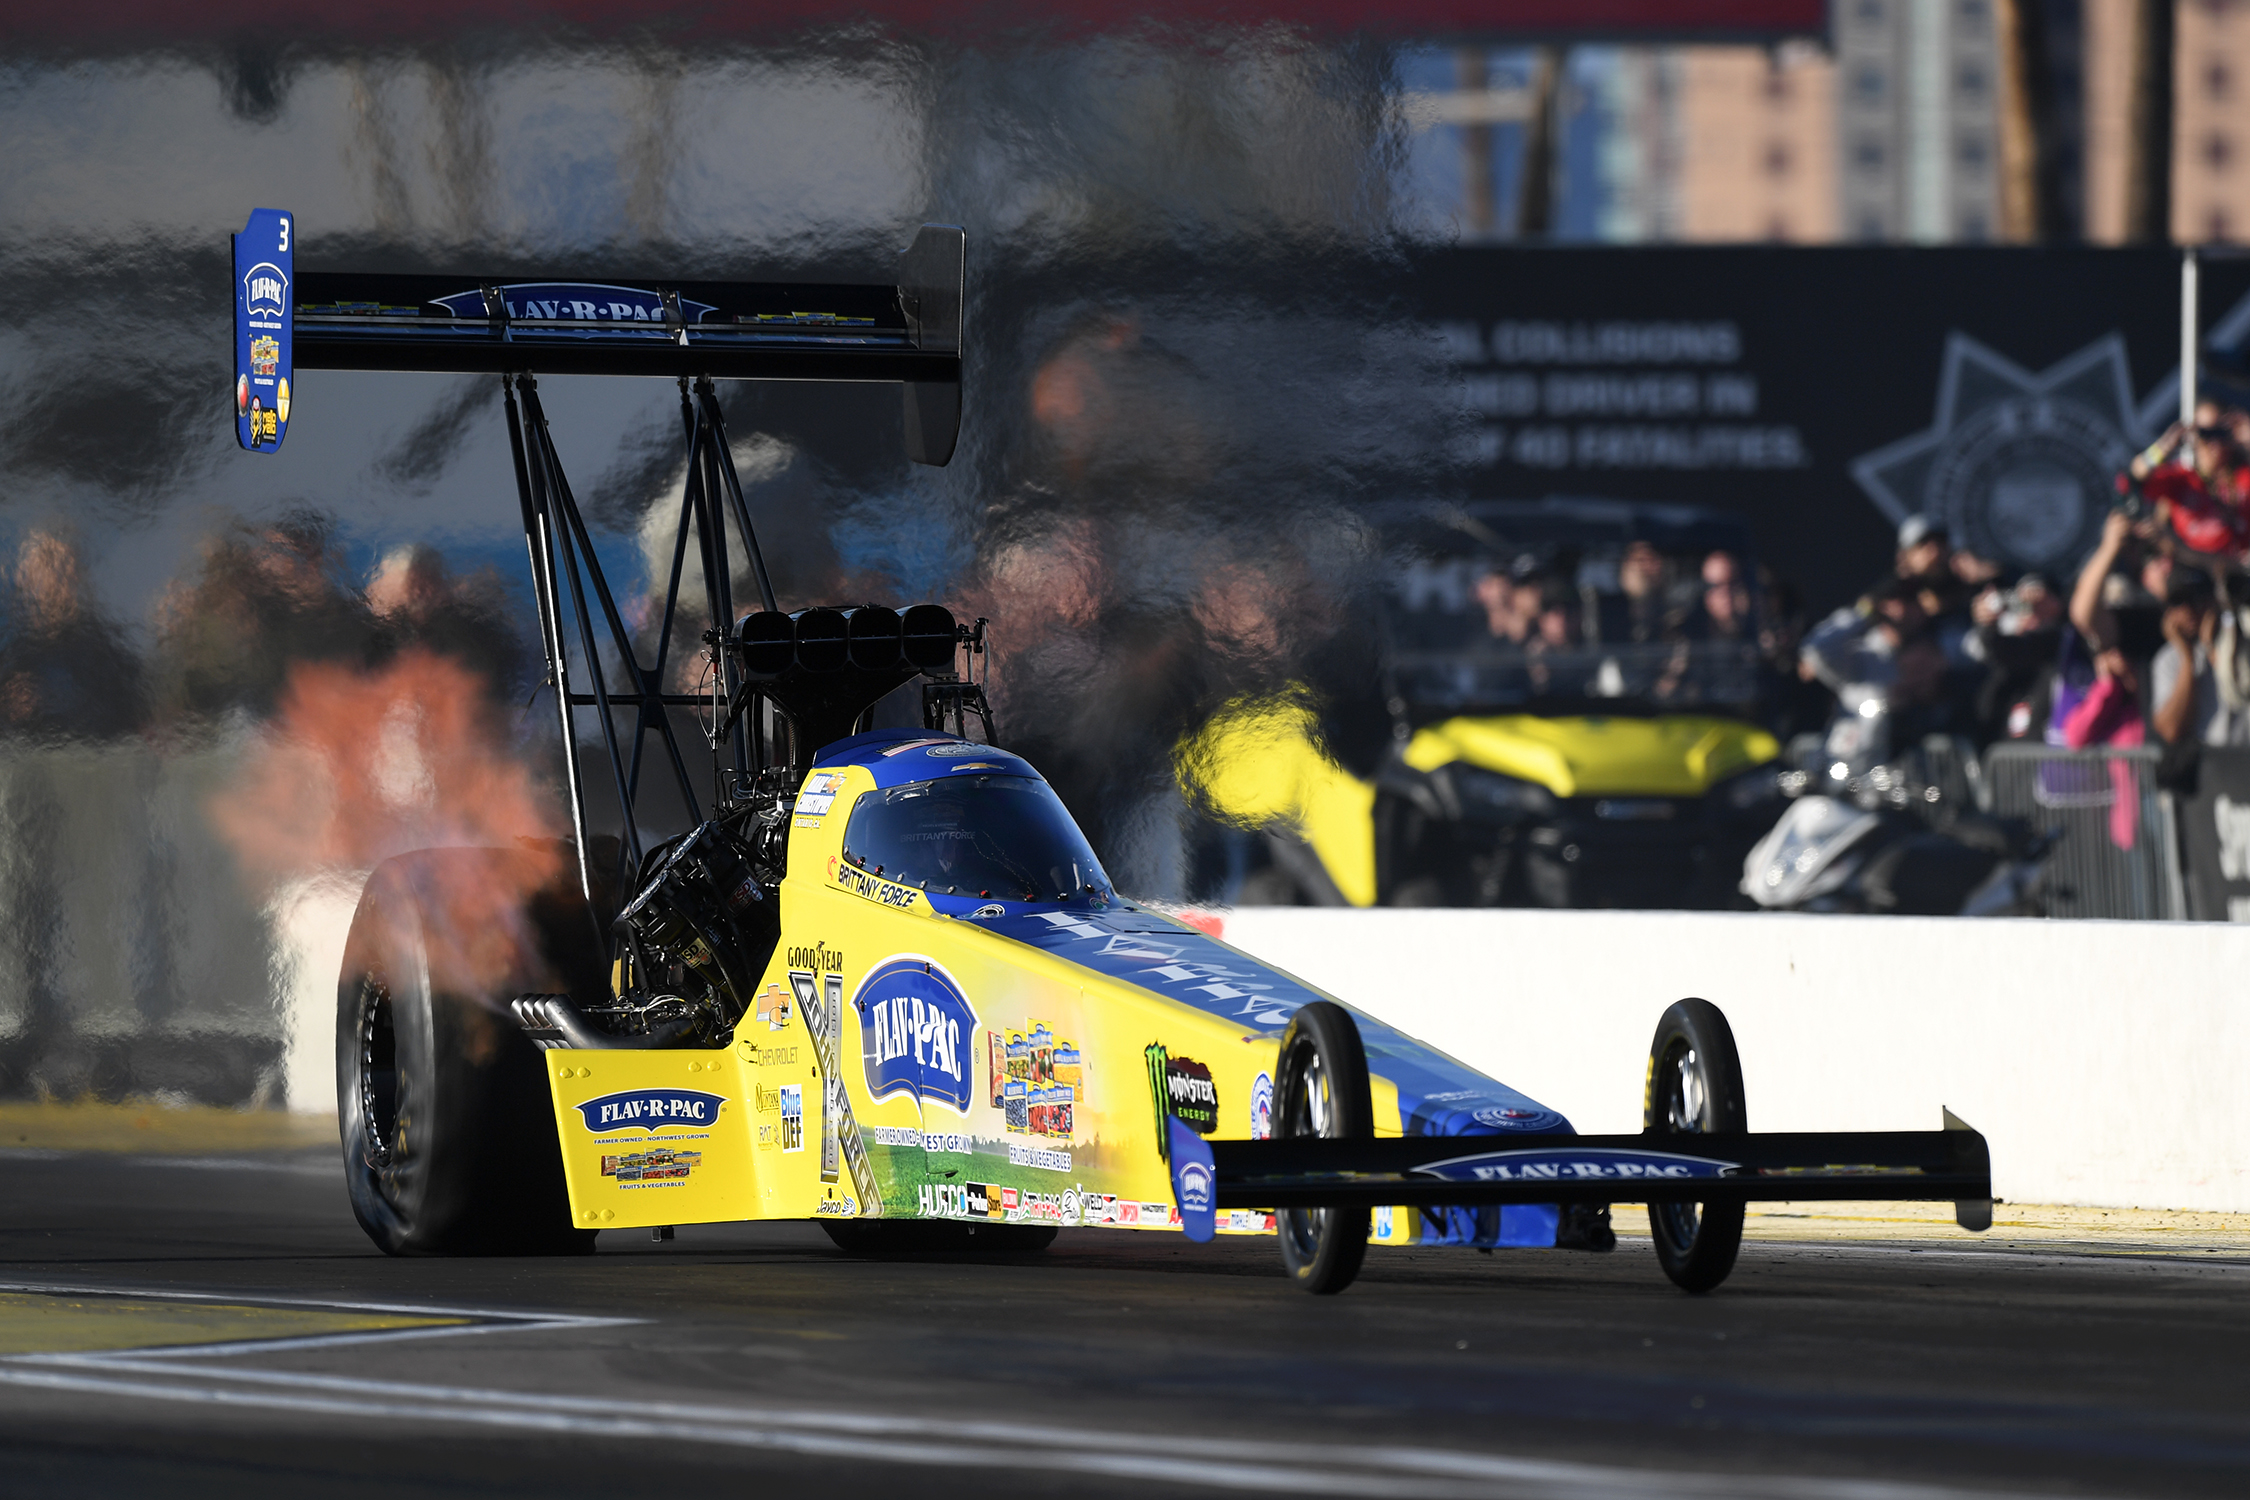 John Force Racing Top Fuel Dragster pilot Brittany Force is the No. 1 qualifier in her category at the NHRA Arizona Nationals